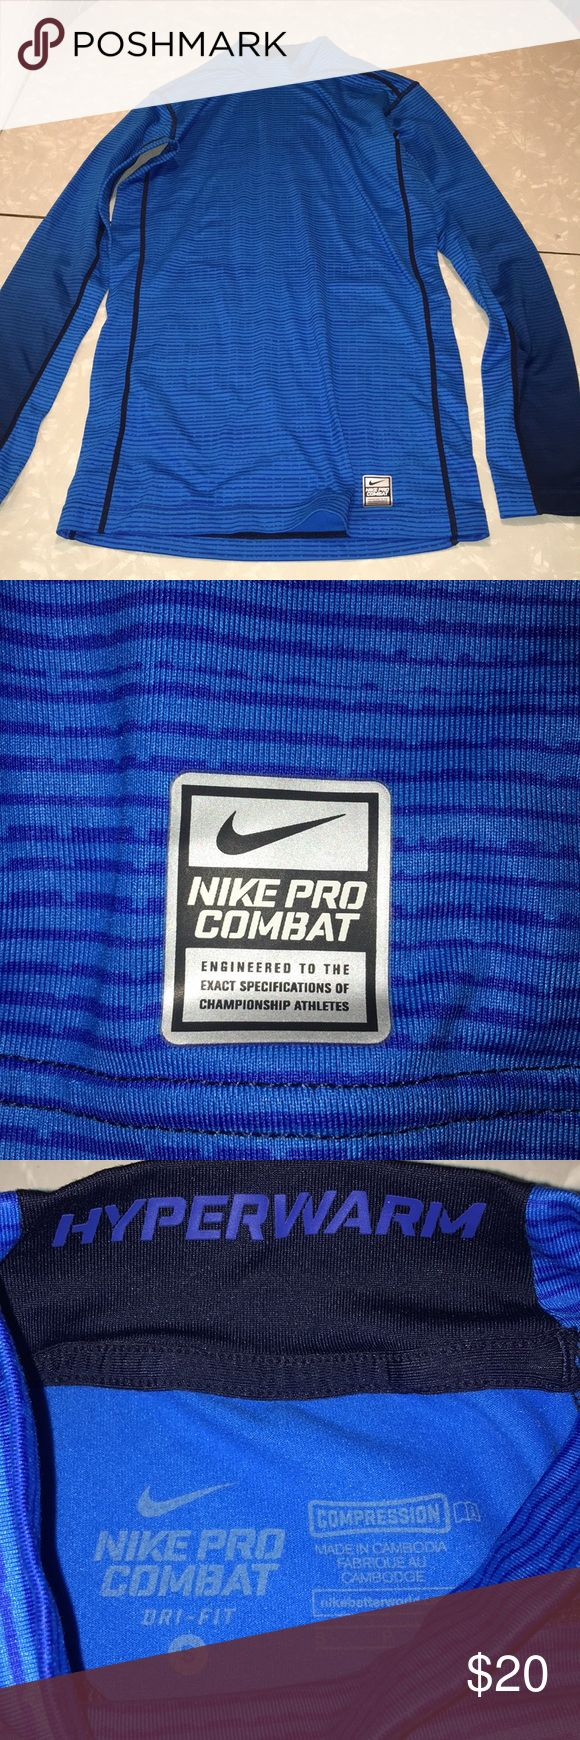 Nike Pro Compression Top Nike Pro Combat Hyperwarm Compression Top Blue size small. Very warm and fits tight. Excellent condition no rips or stains anywhere. Nike Shirts